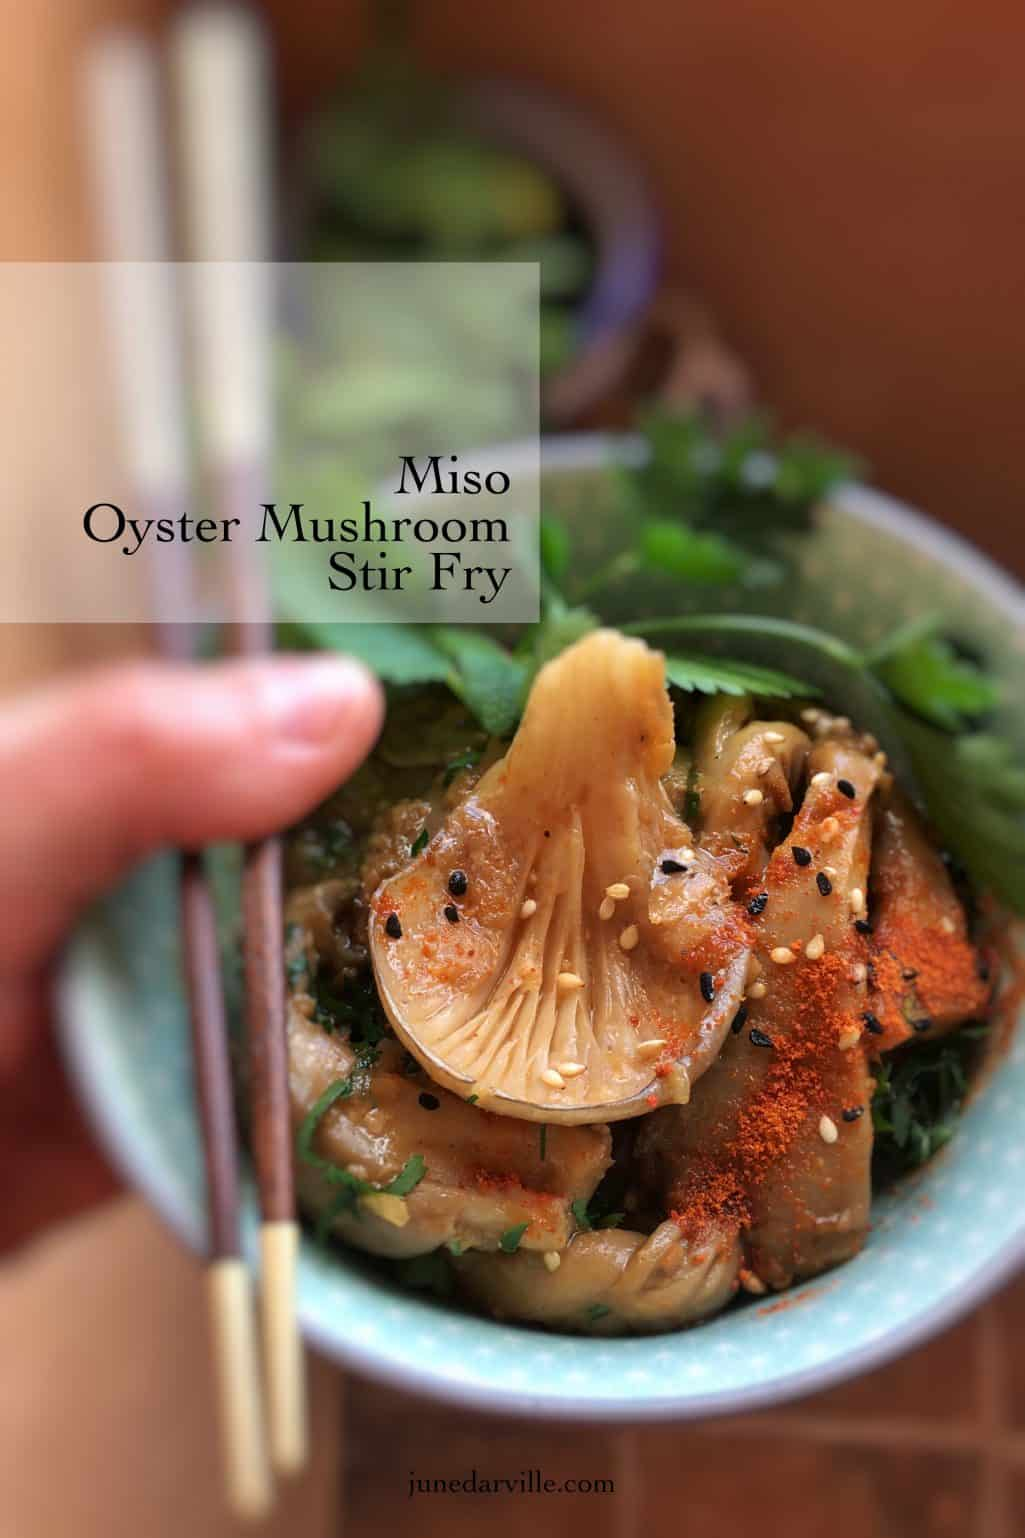 Miso mushroom stir fry recipe simple tasty good for Good side dishes to serve with a fish fry